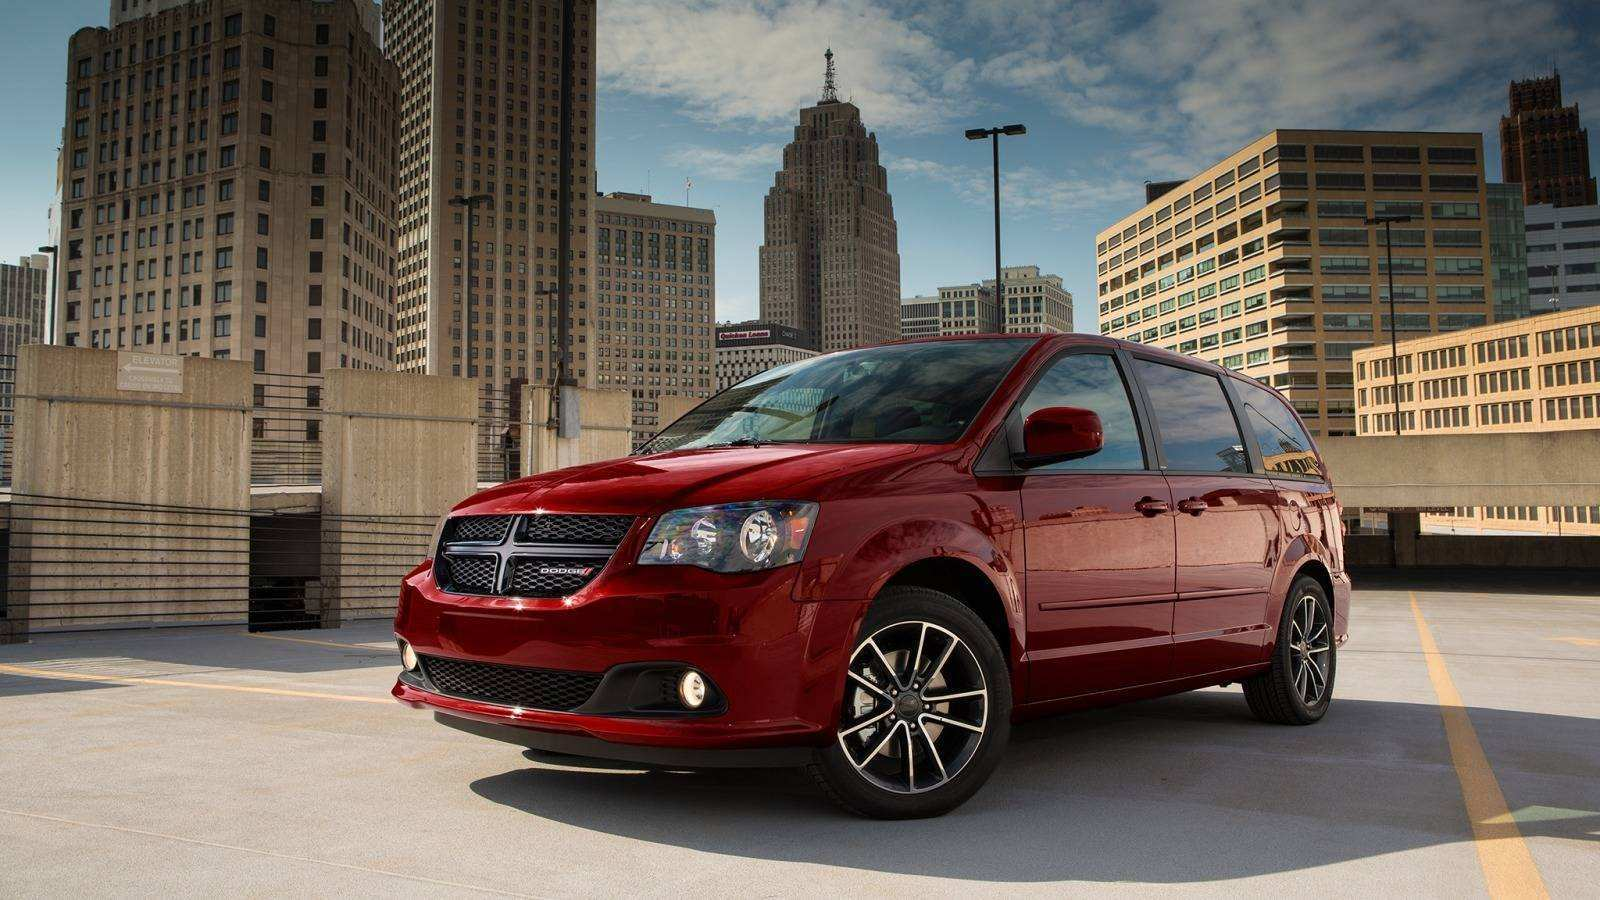 21 Gallery of New 2019 Dodge Caravan Gt Overview And Price Overview with New 2019 Dodge Caravan Gt Overview And Price